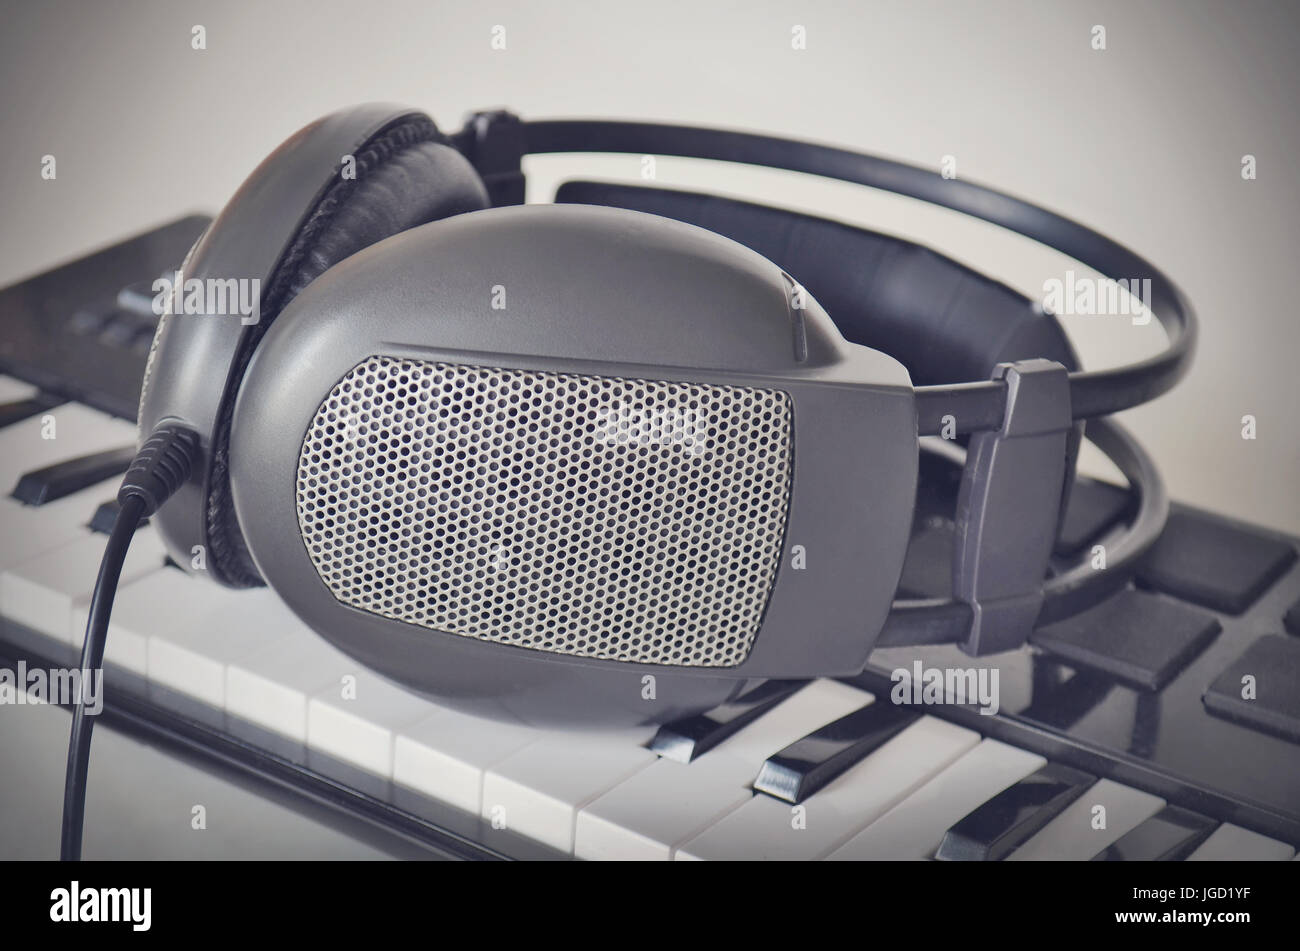 Headphones on electone midi keyboard. Close up. instagram filter style. - Stock Image